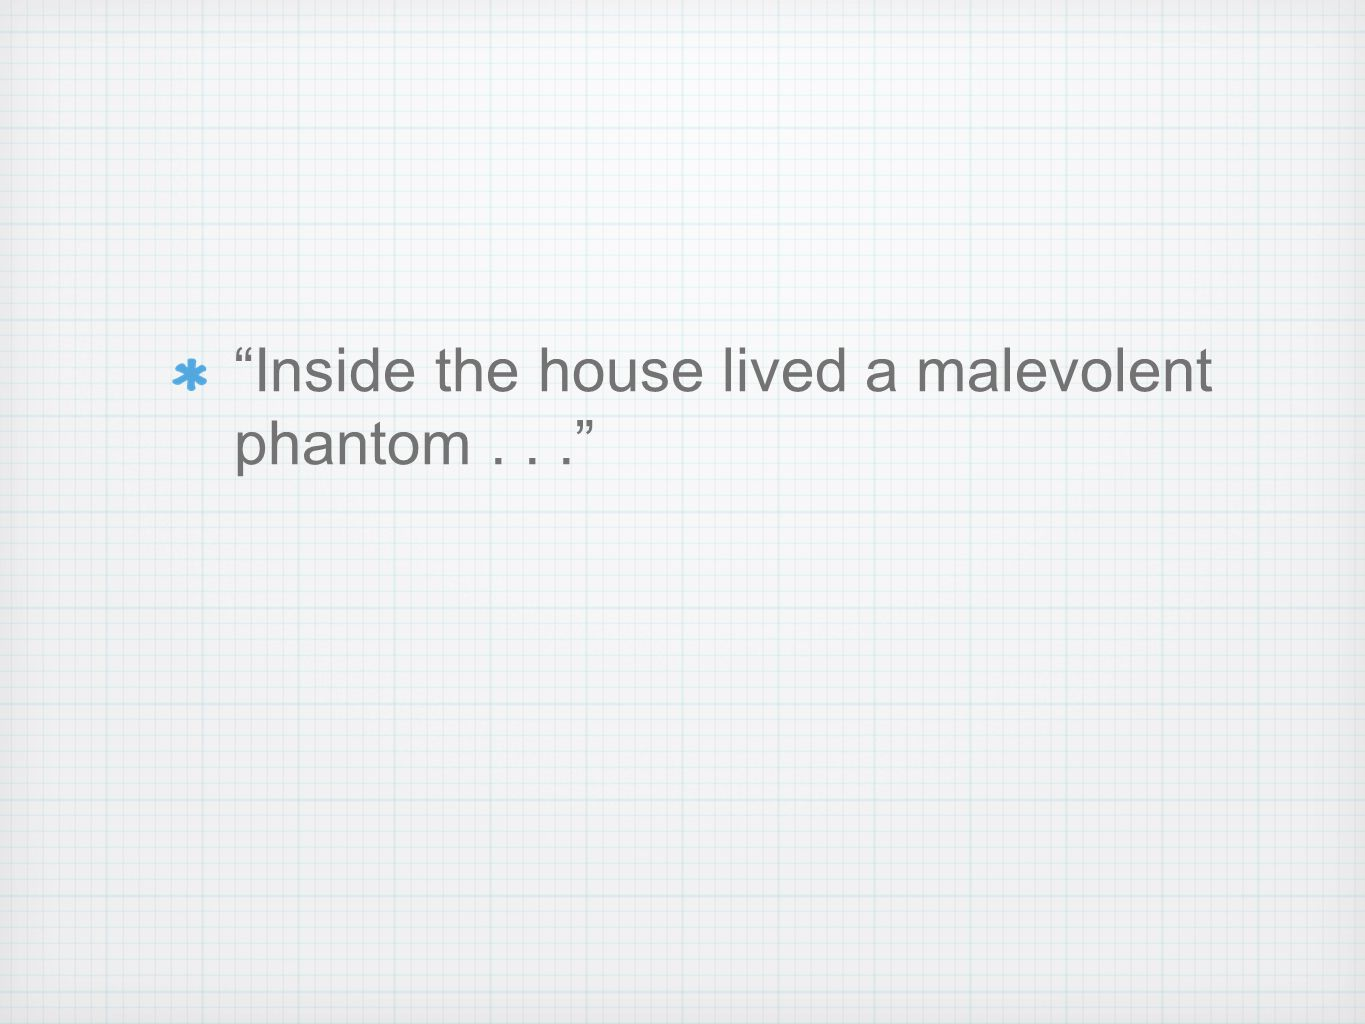 what is a malevolent phantom